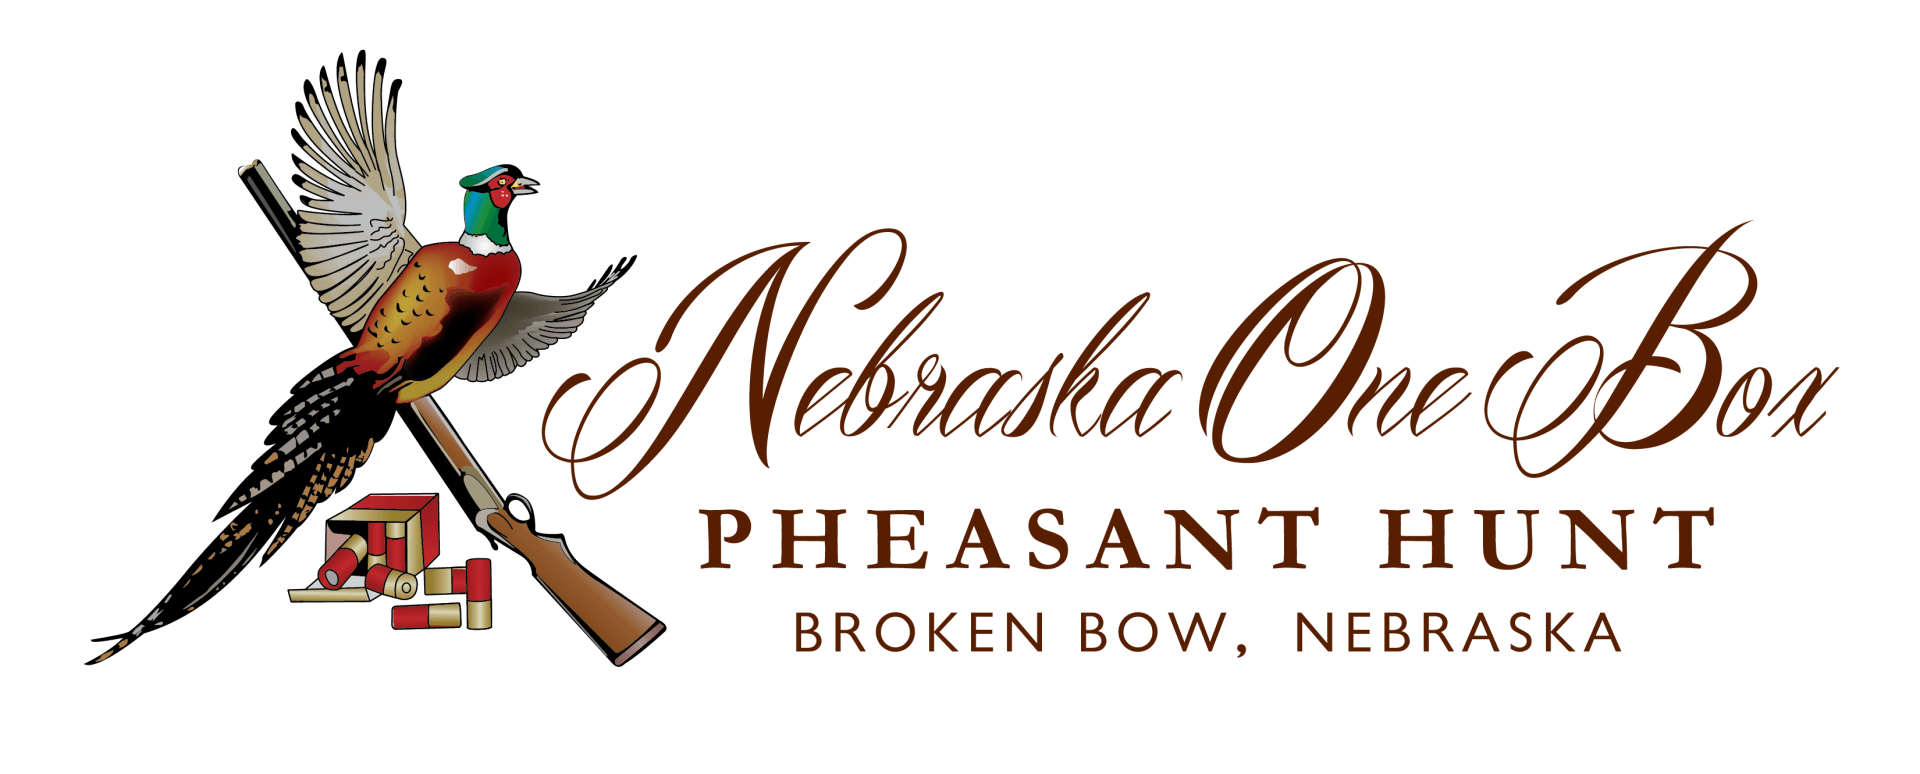 www.nebraskaonebox.com